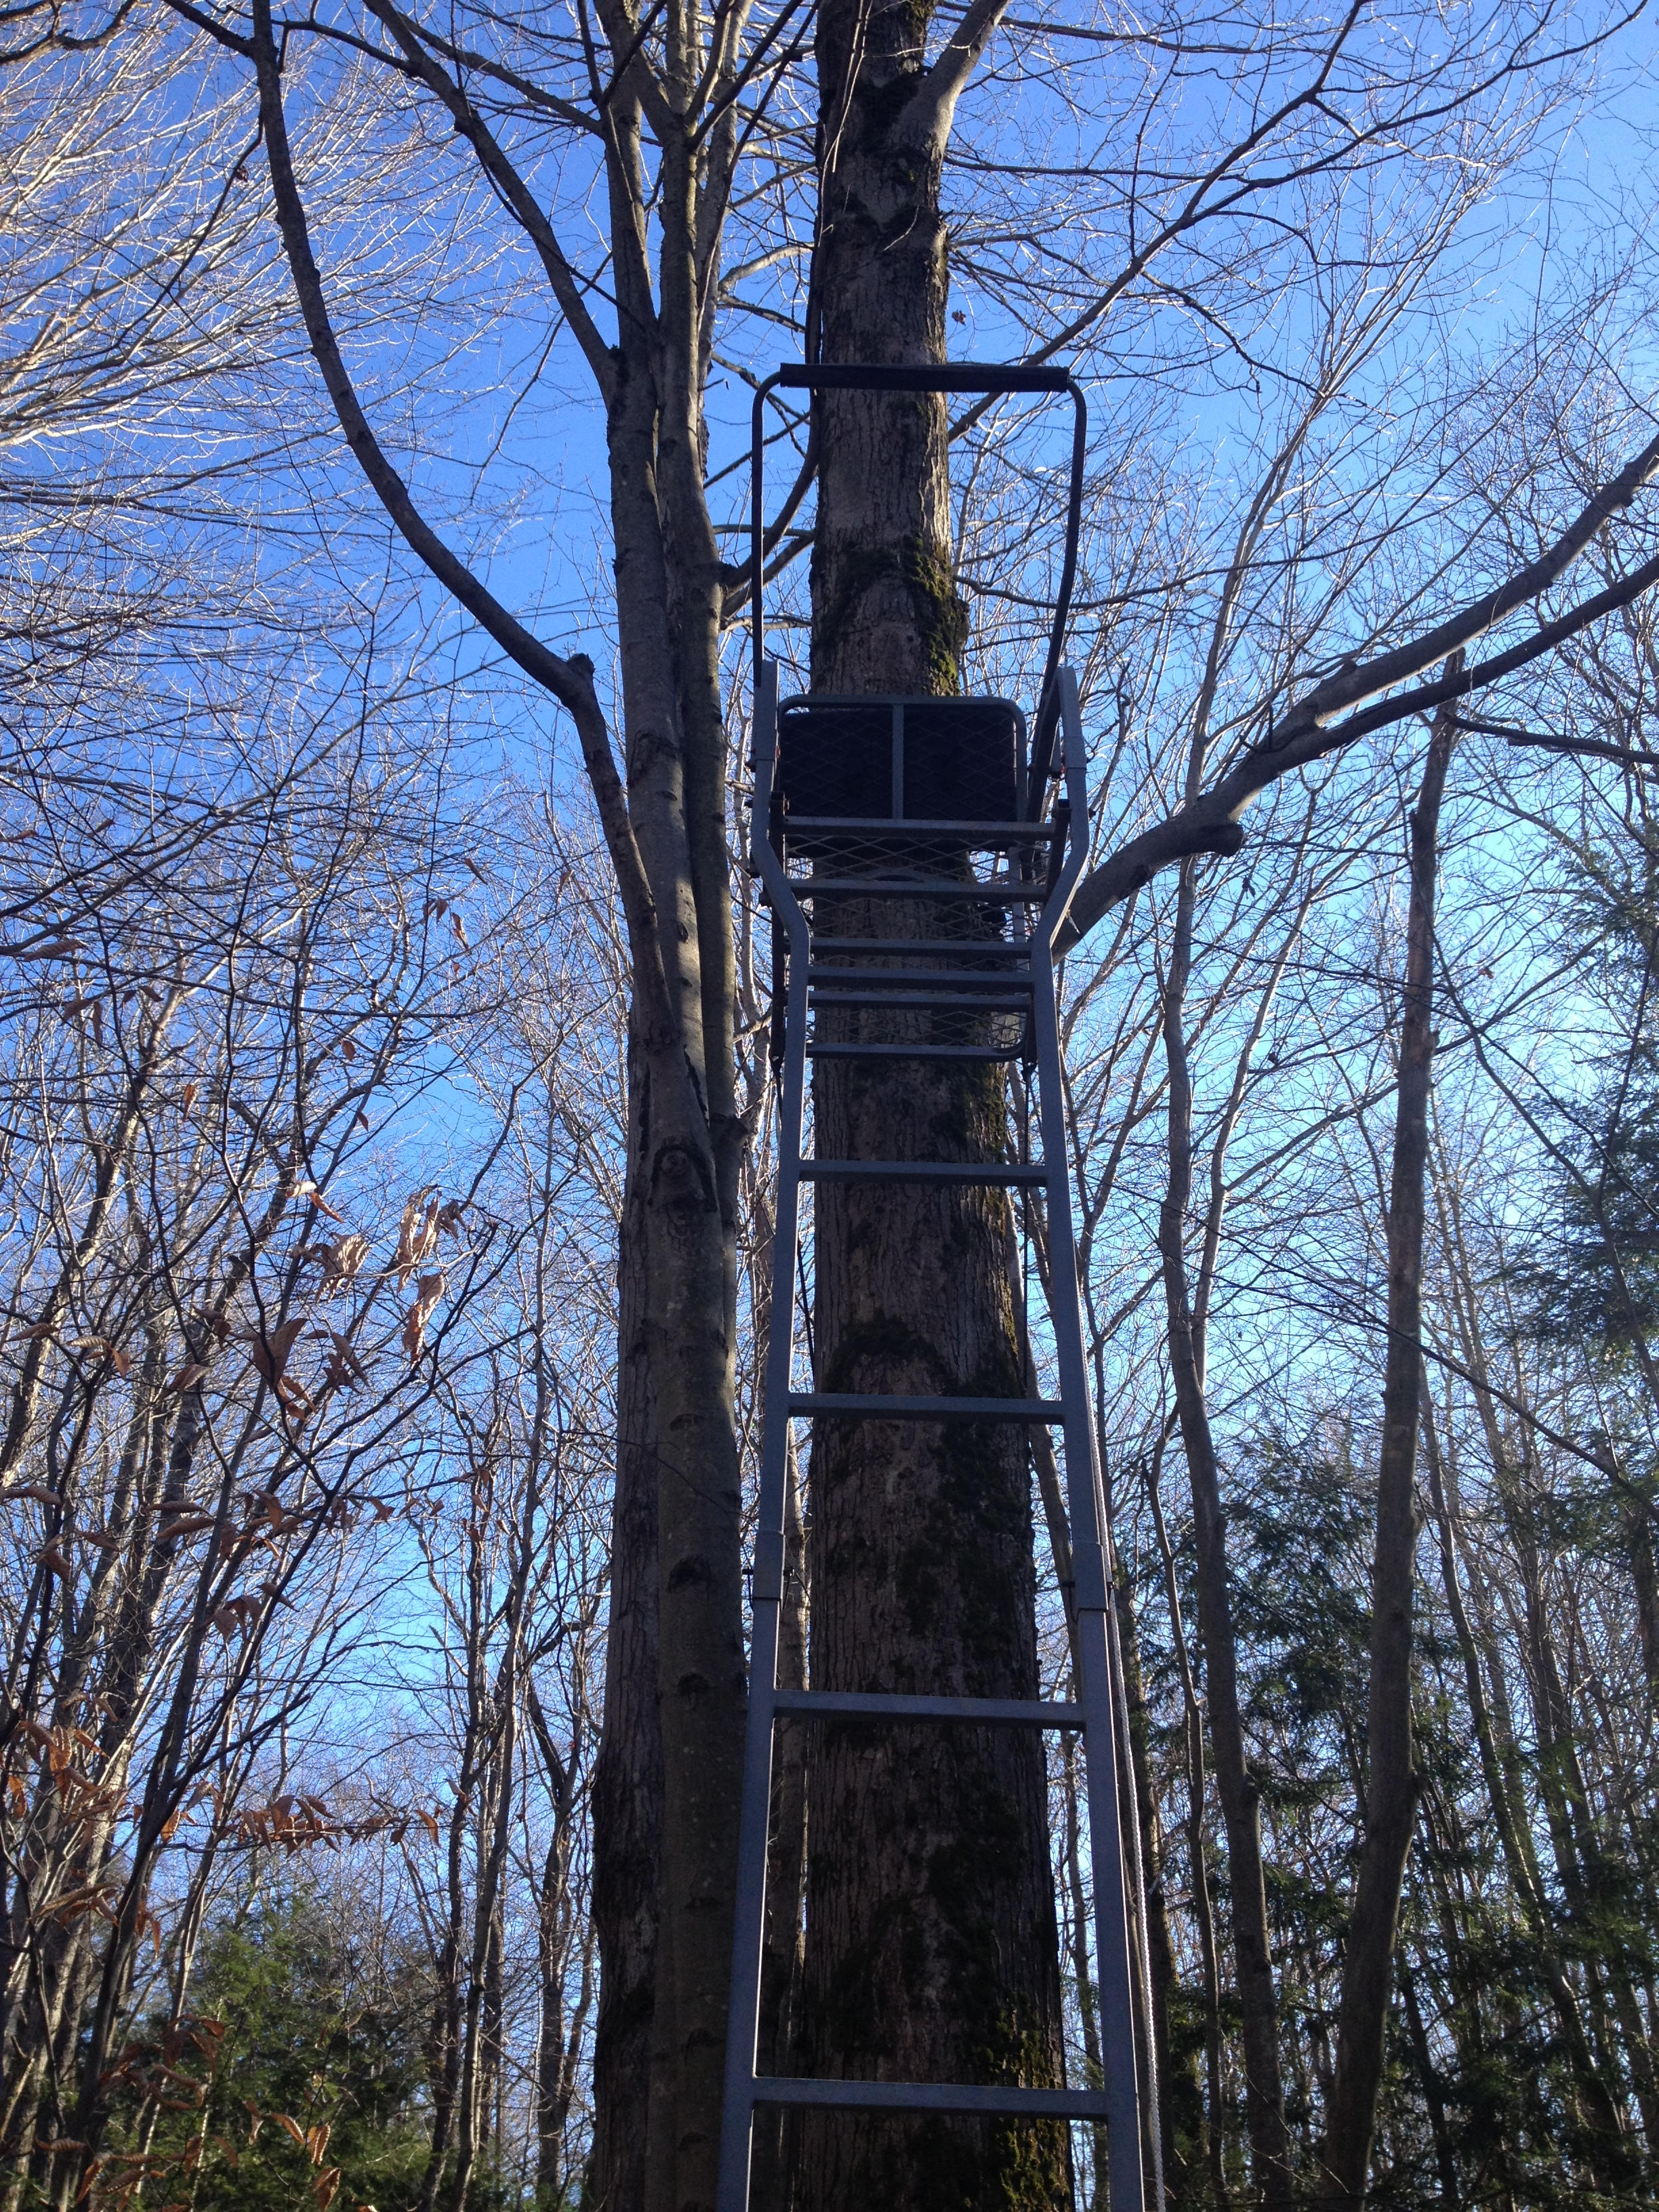 Plenty of ladder stands in prime locations.